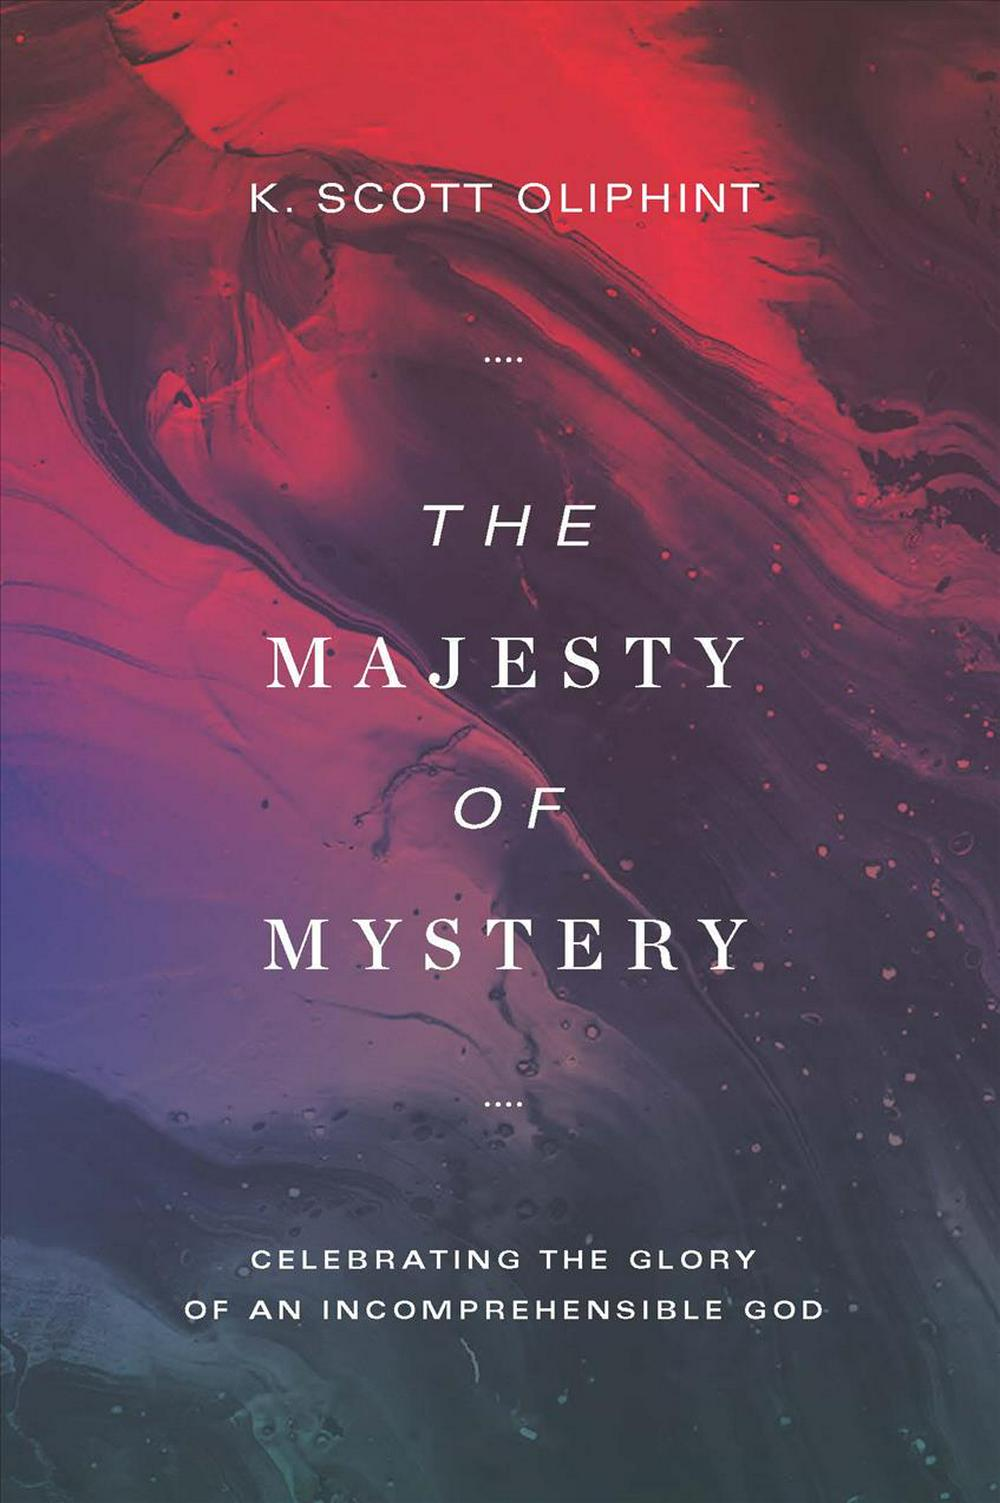 The Majesty of MysteryCelebrating the Glory of an Incomprehensible God by K. Scott Oliphint, ISBN: 9781577997429